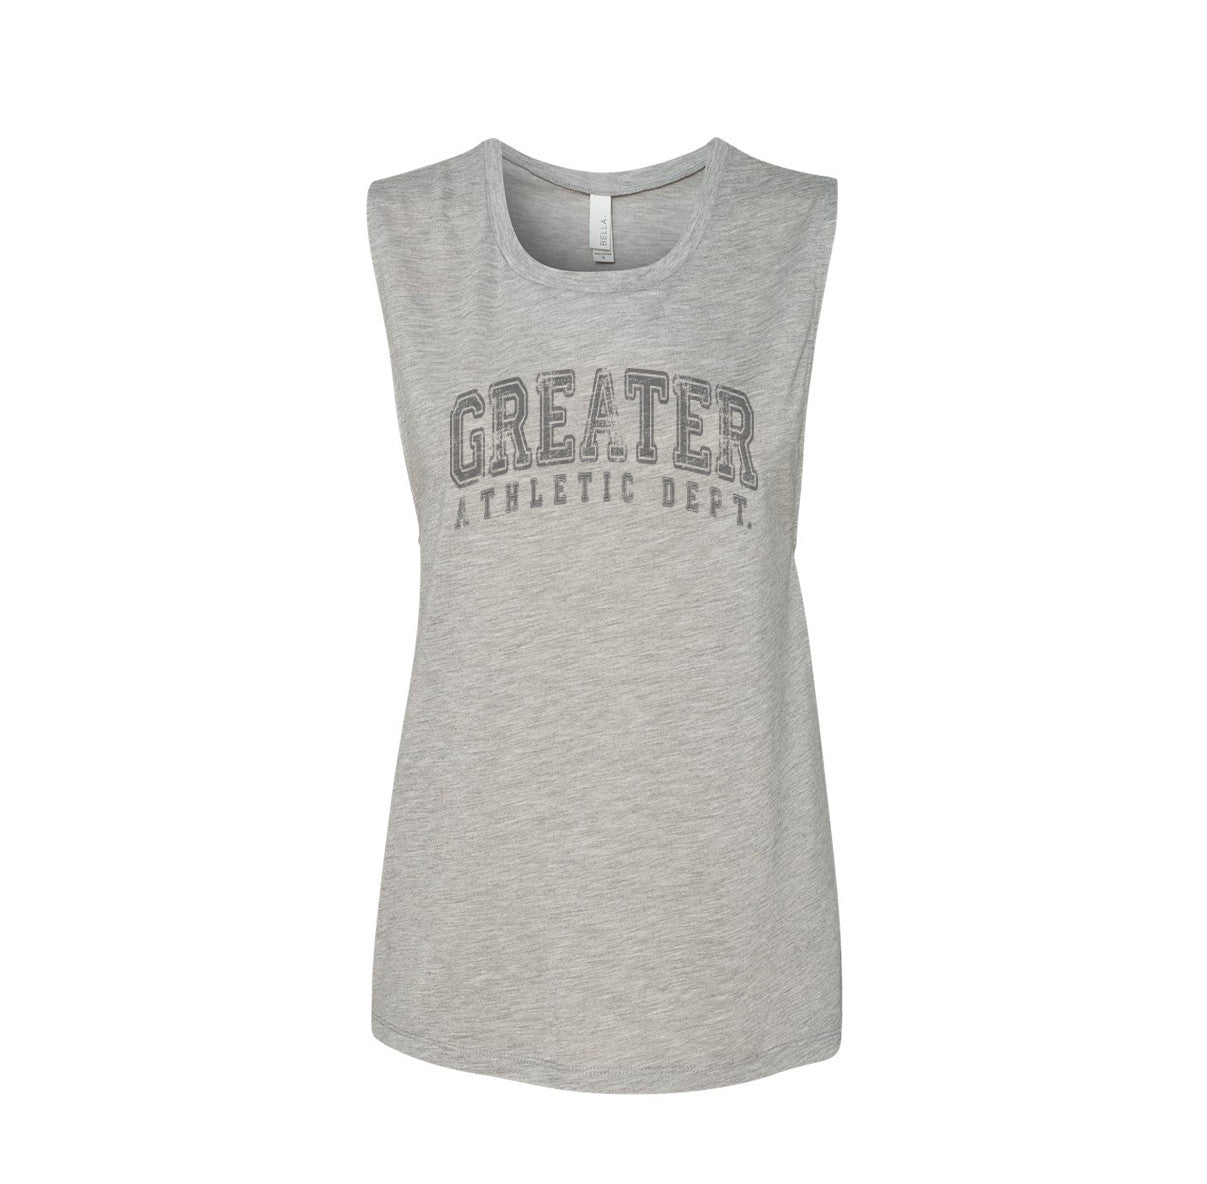 Women - Greater Athletic Department Tank